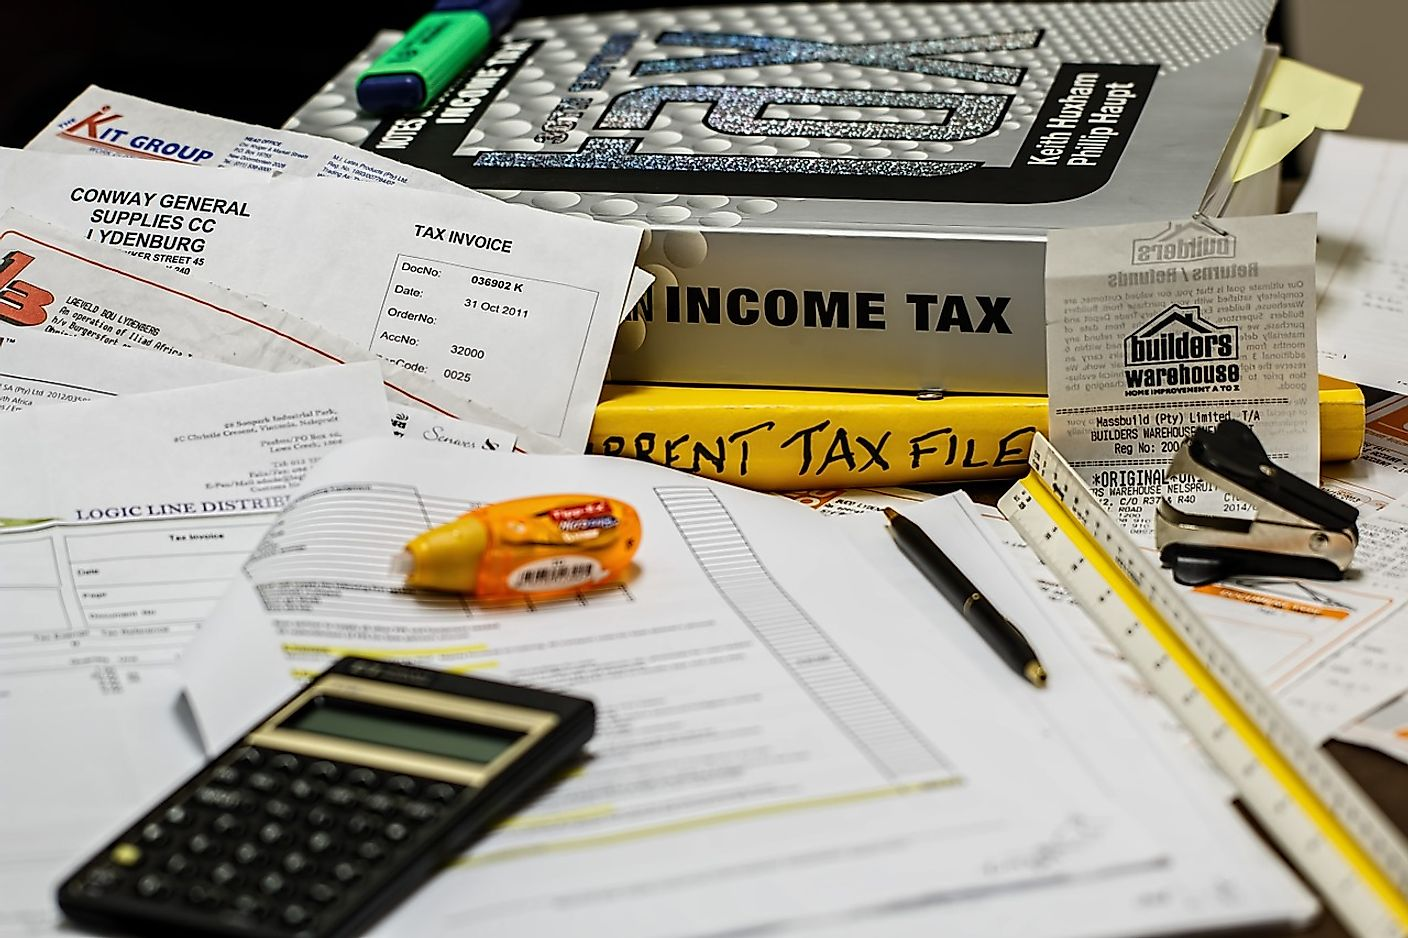 Tax preparation and payment is an arduous task and requires more time in some countries than others.